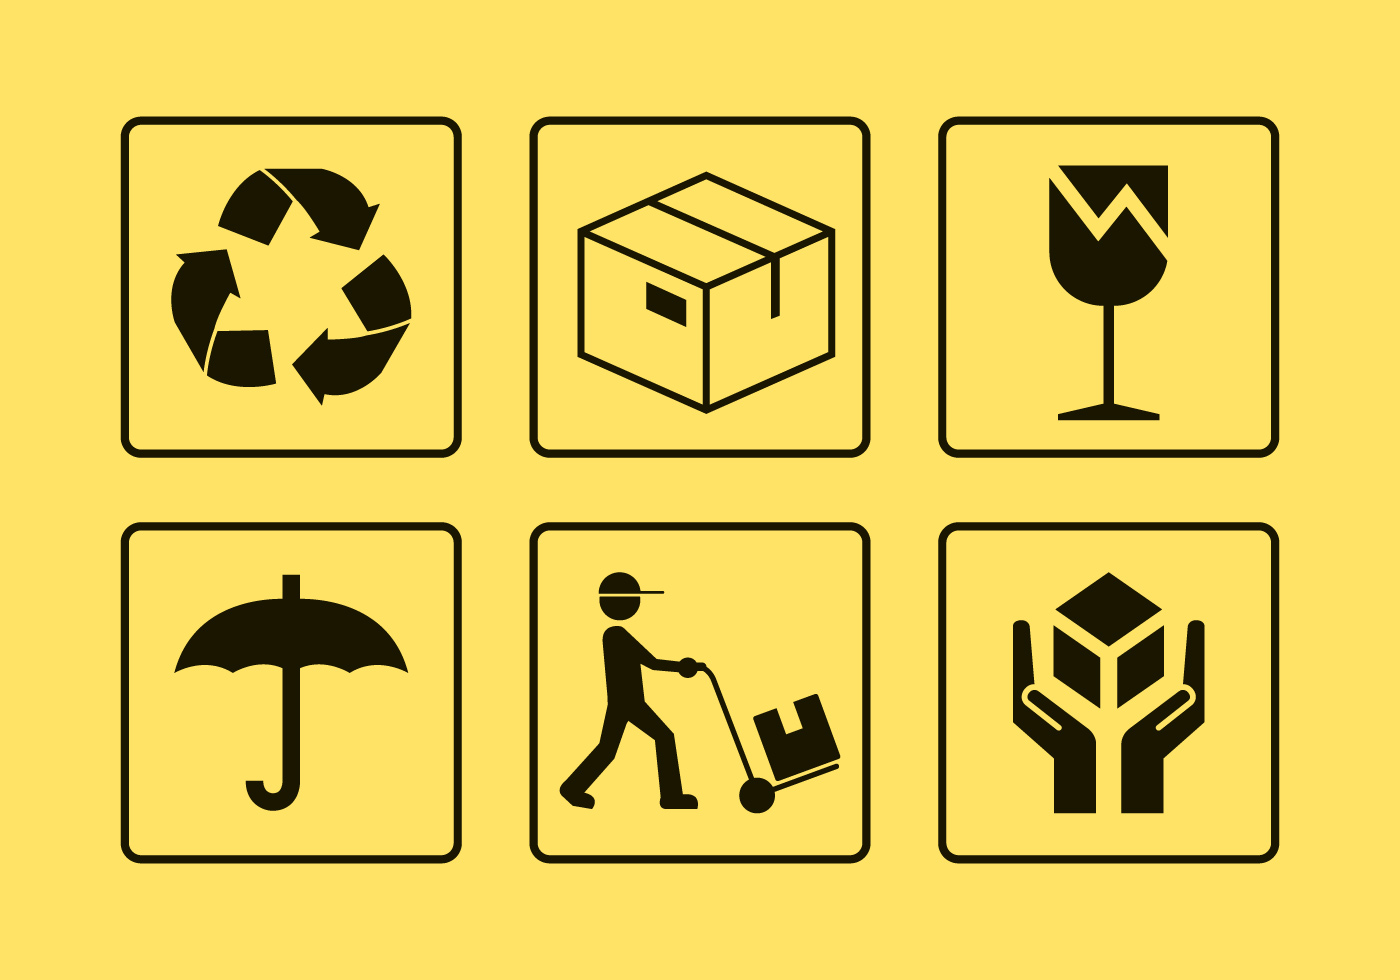 Package Handling Vector Icons Download Free Vector Art